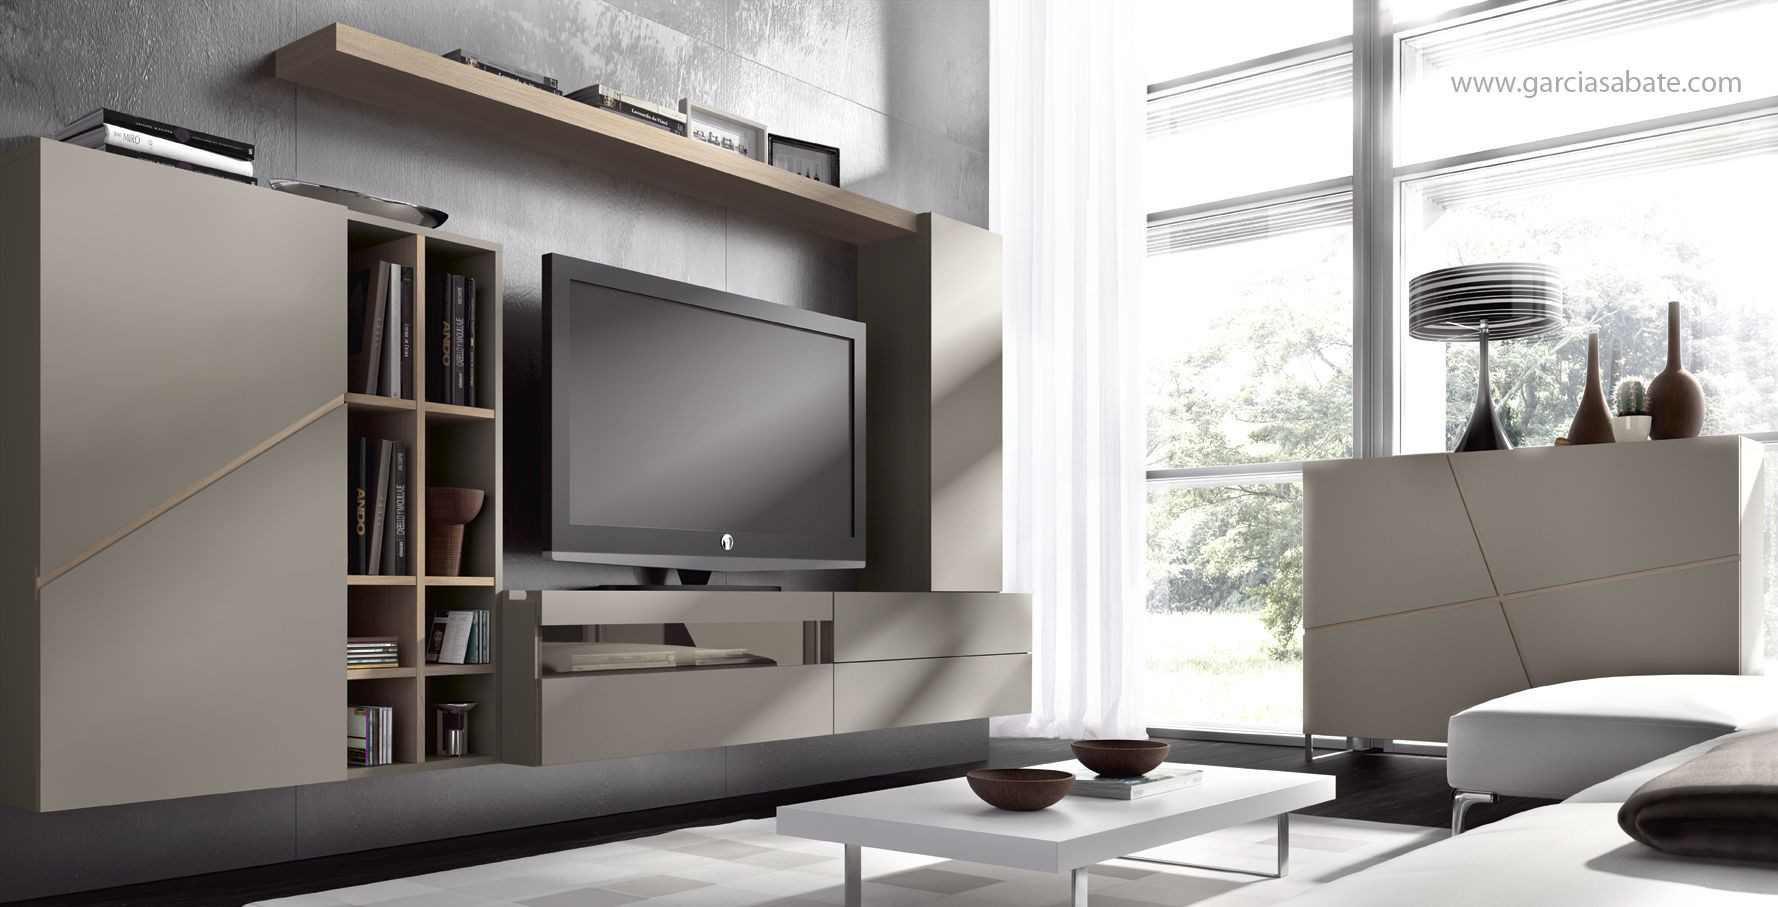 Muebles Para Tv Modernos Innovador Mueble Moderno Para La Tv Of Muebles Para Tv Modernos Adorable Decore On Pinterest